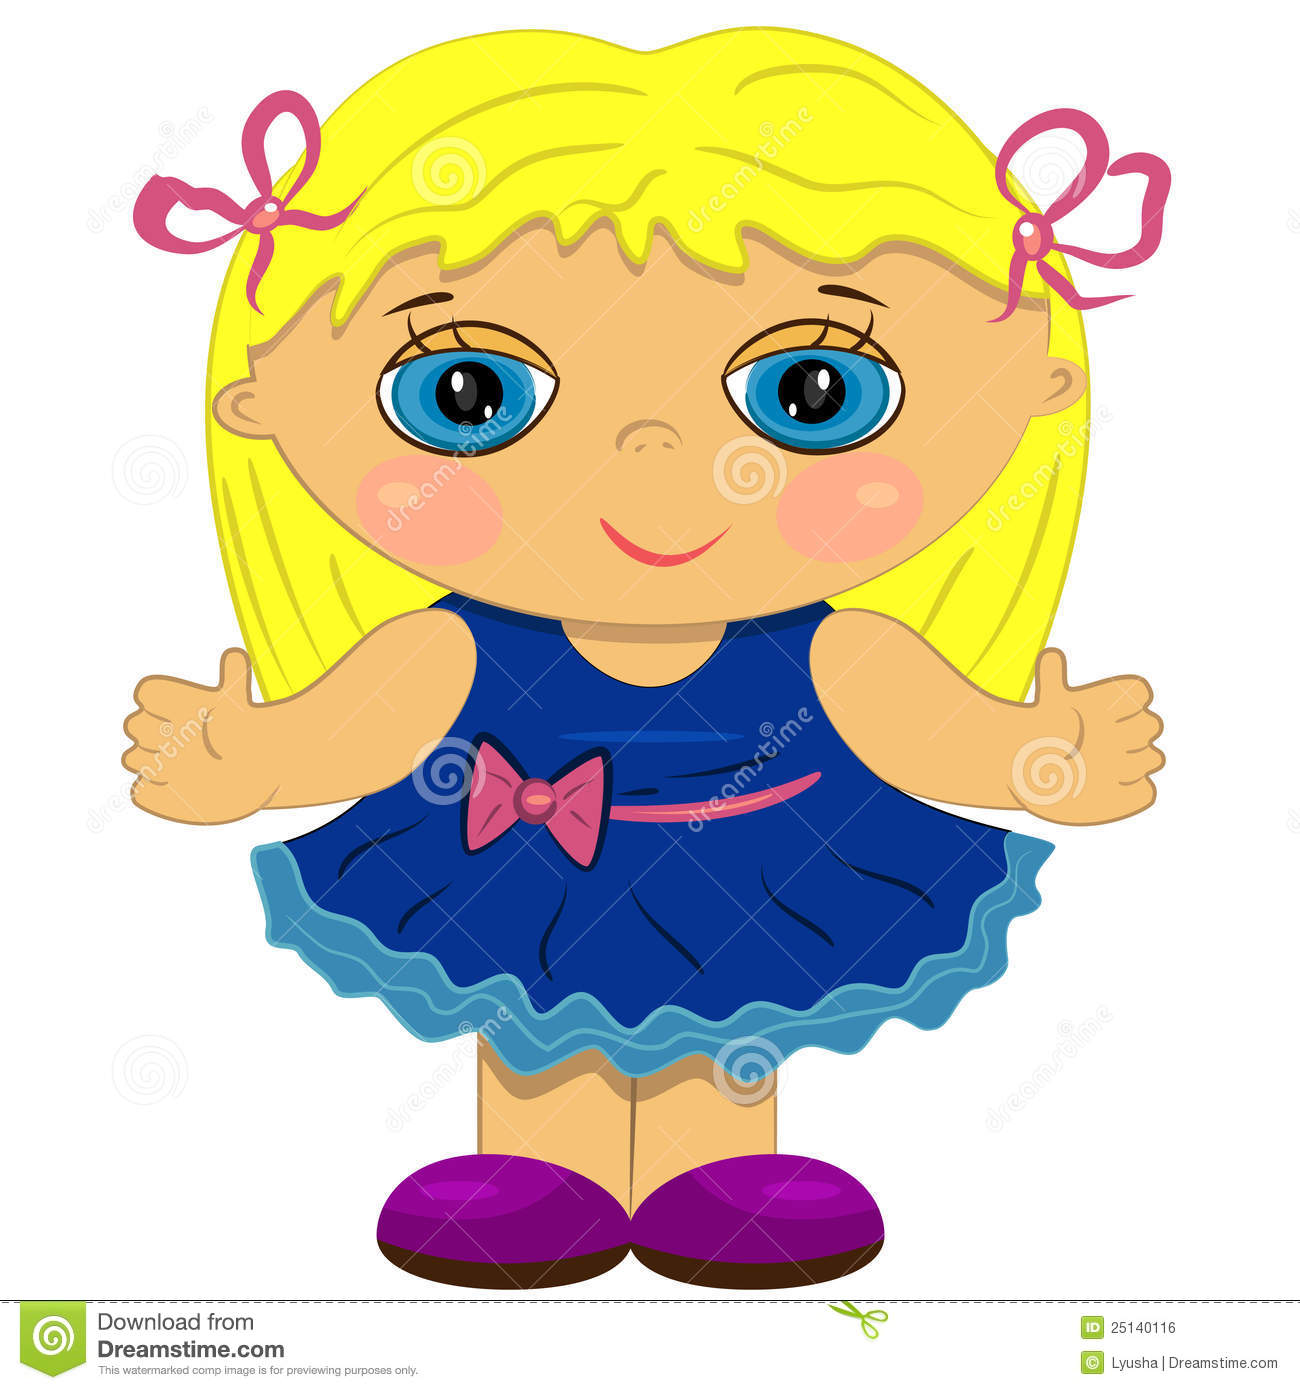 Girl Toys Clip Art : Clapping baby girl cute doll illustration stock vector